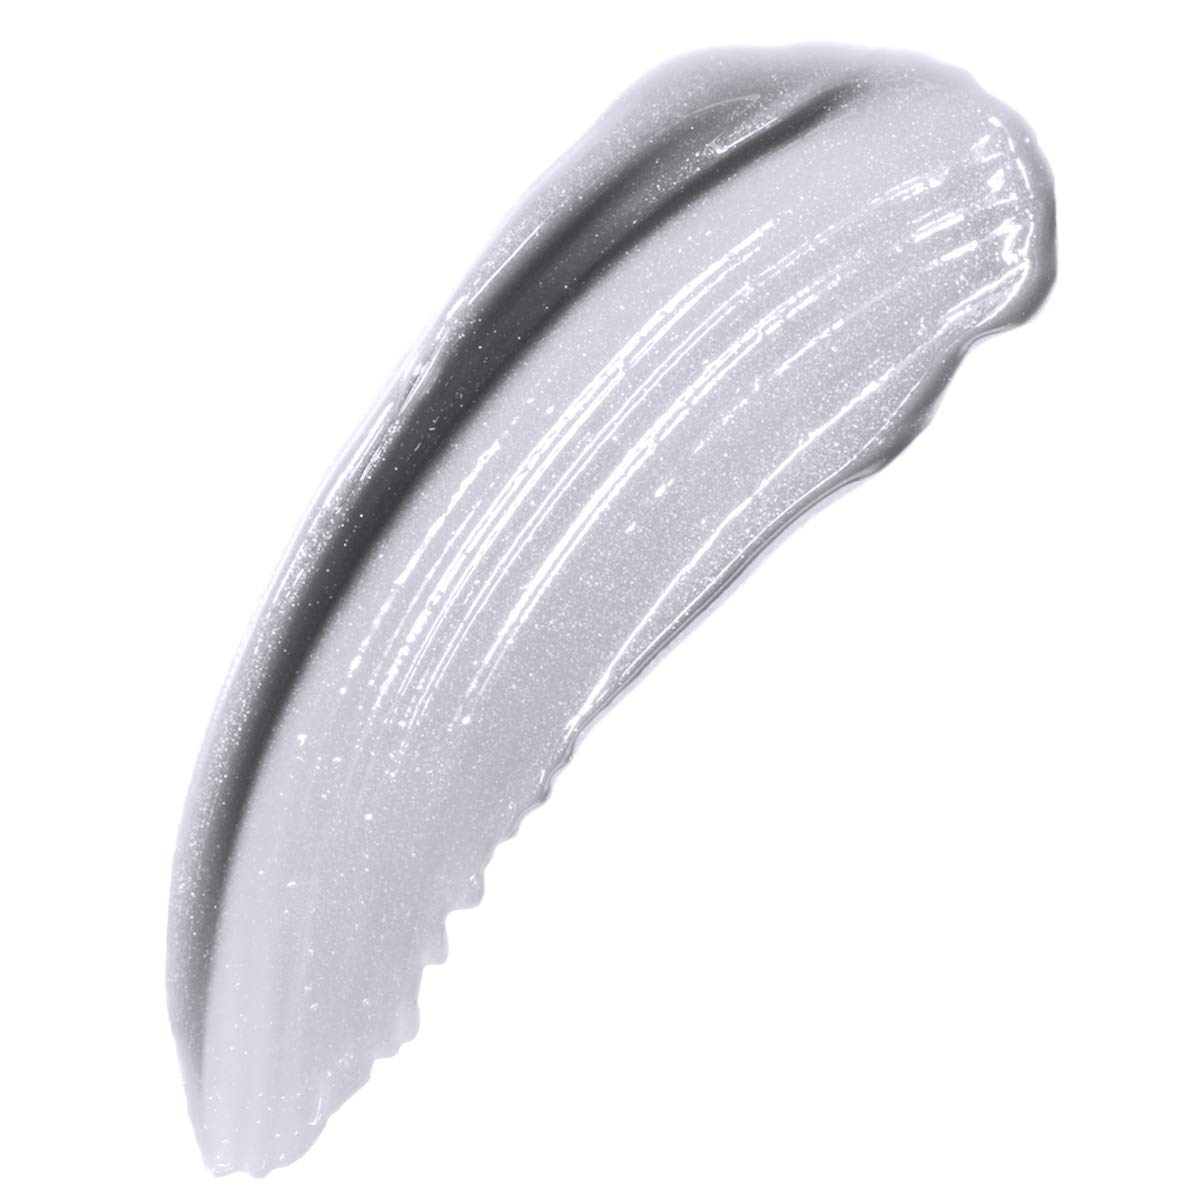 The Blade by Dominique Cosmetics #8